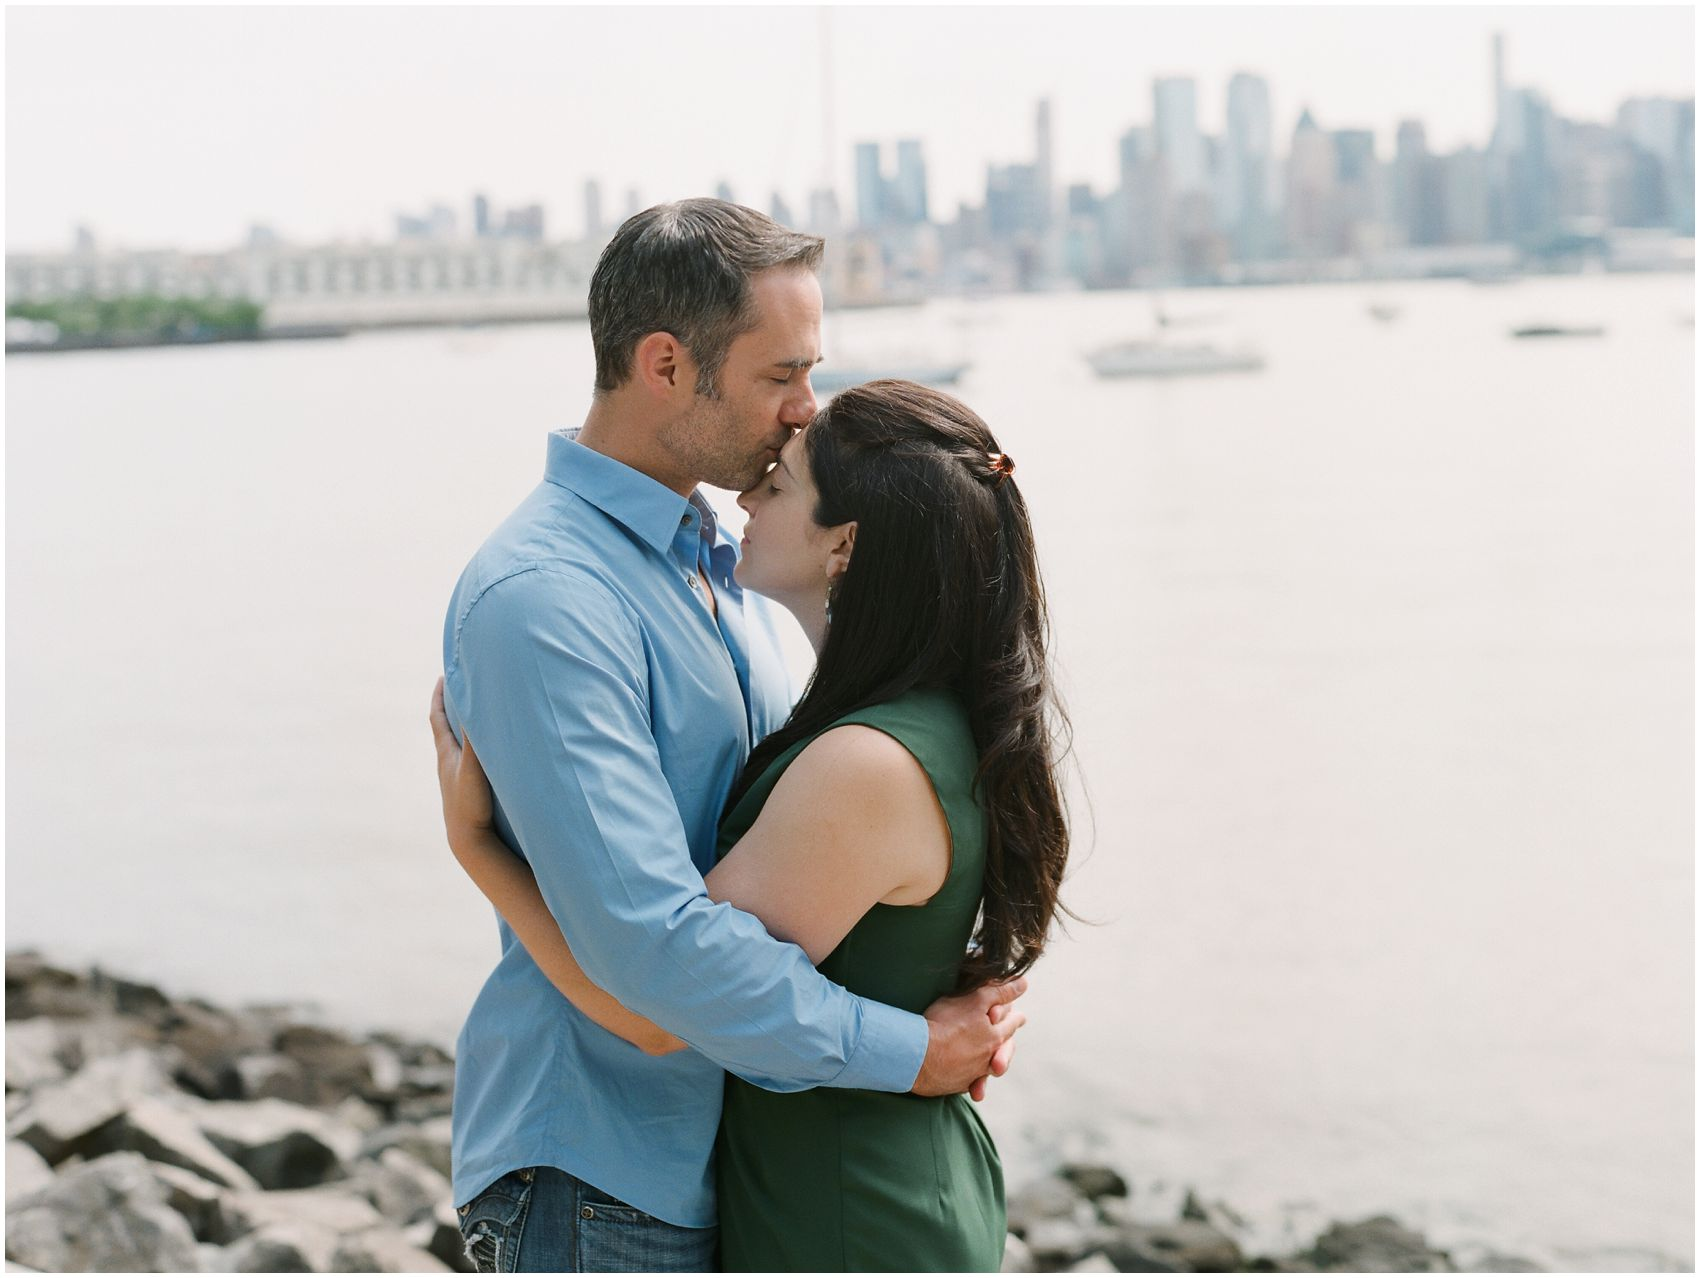 intimate moment of wife and husband embracing each other by the Hudson River in Hoboken NJ